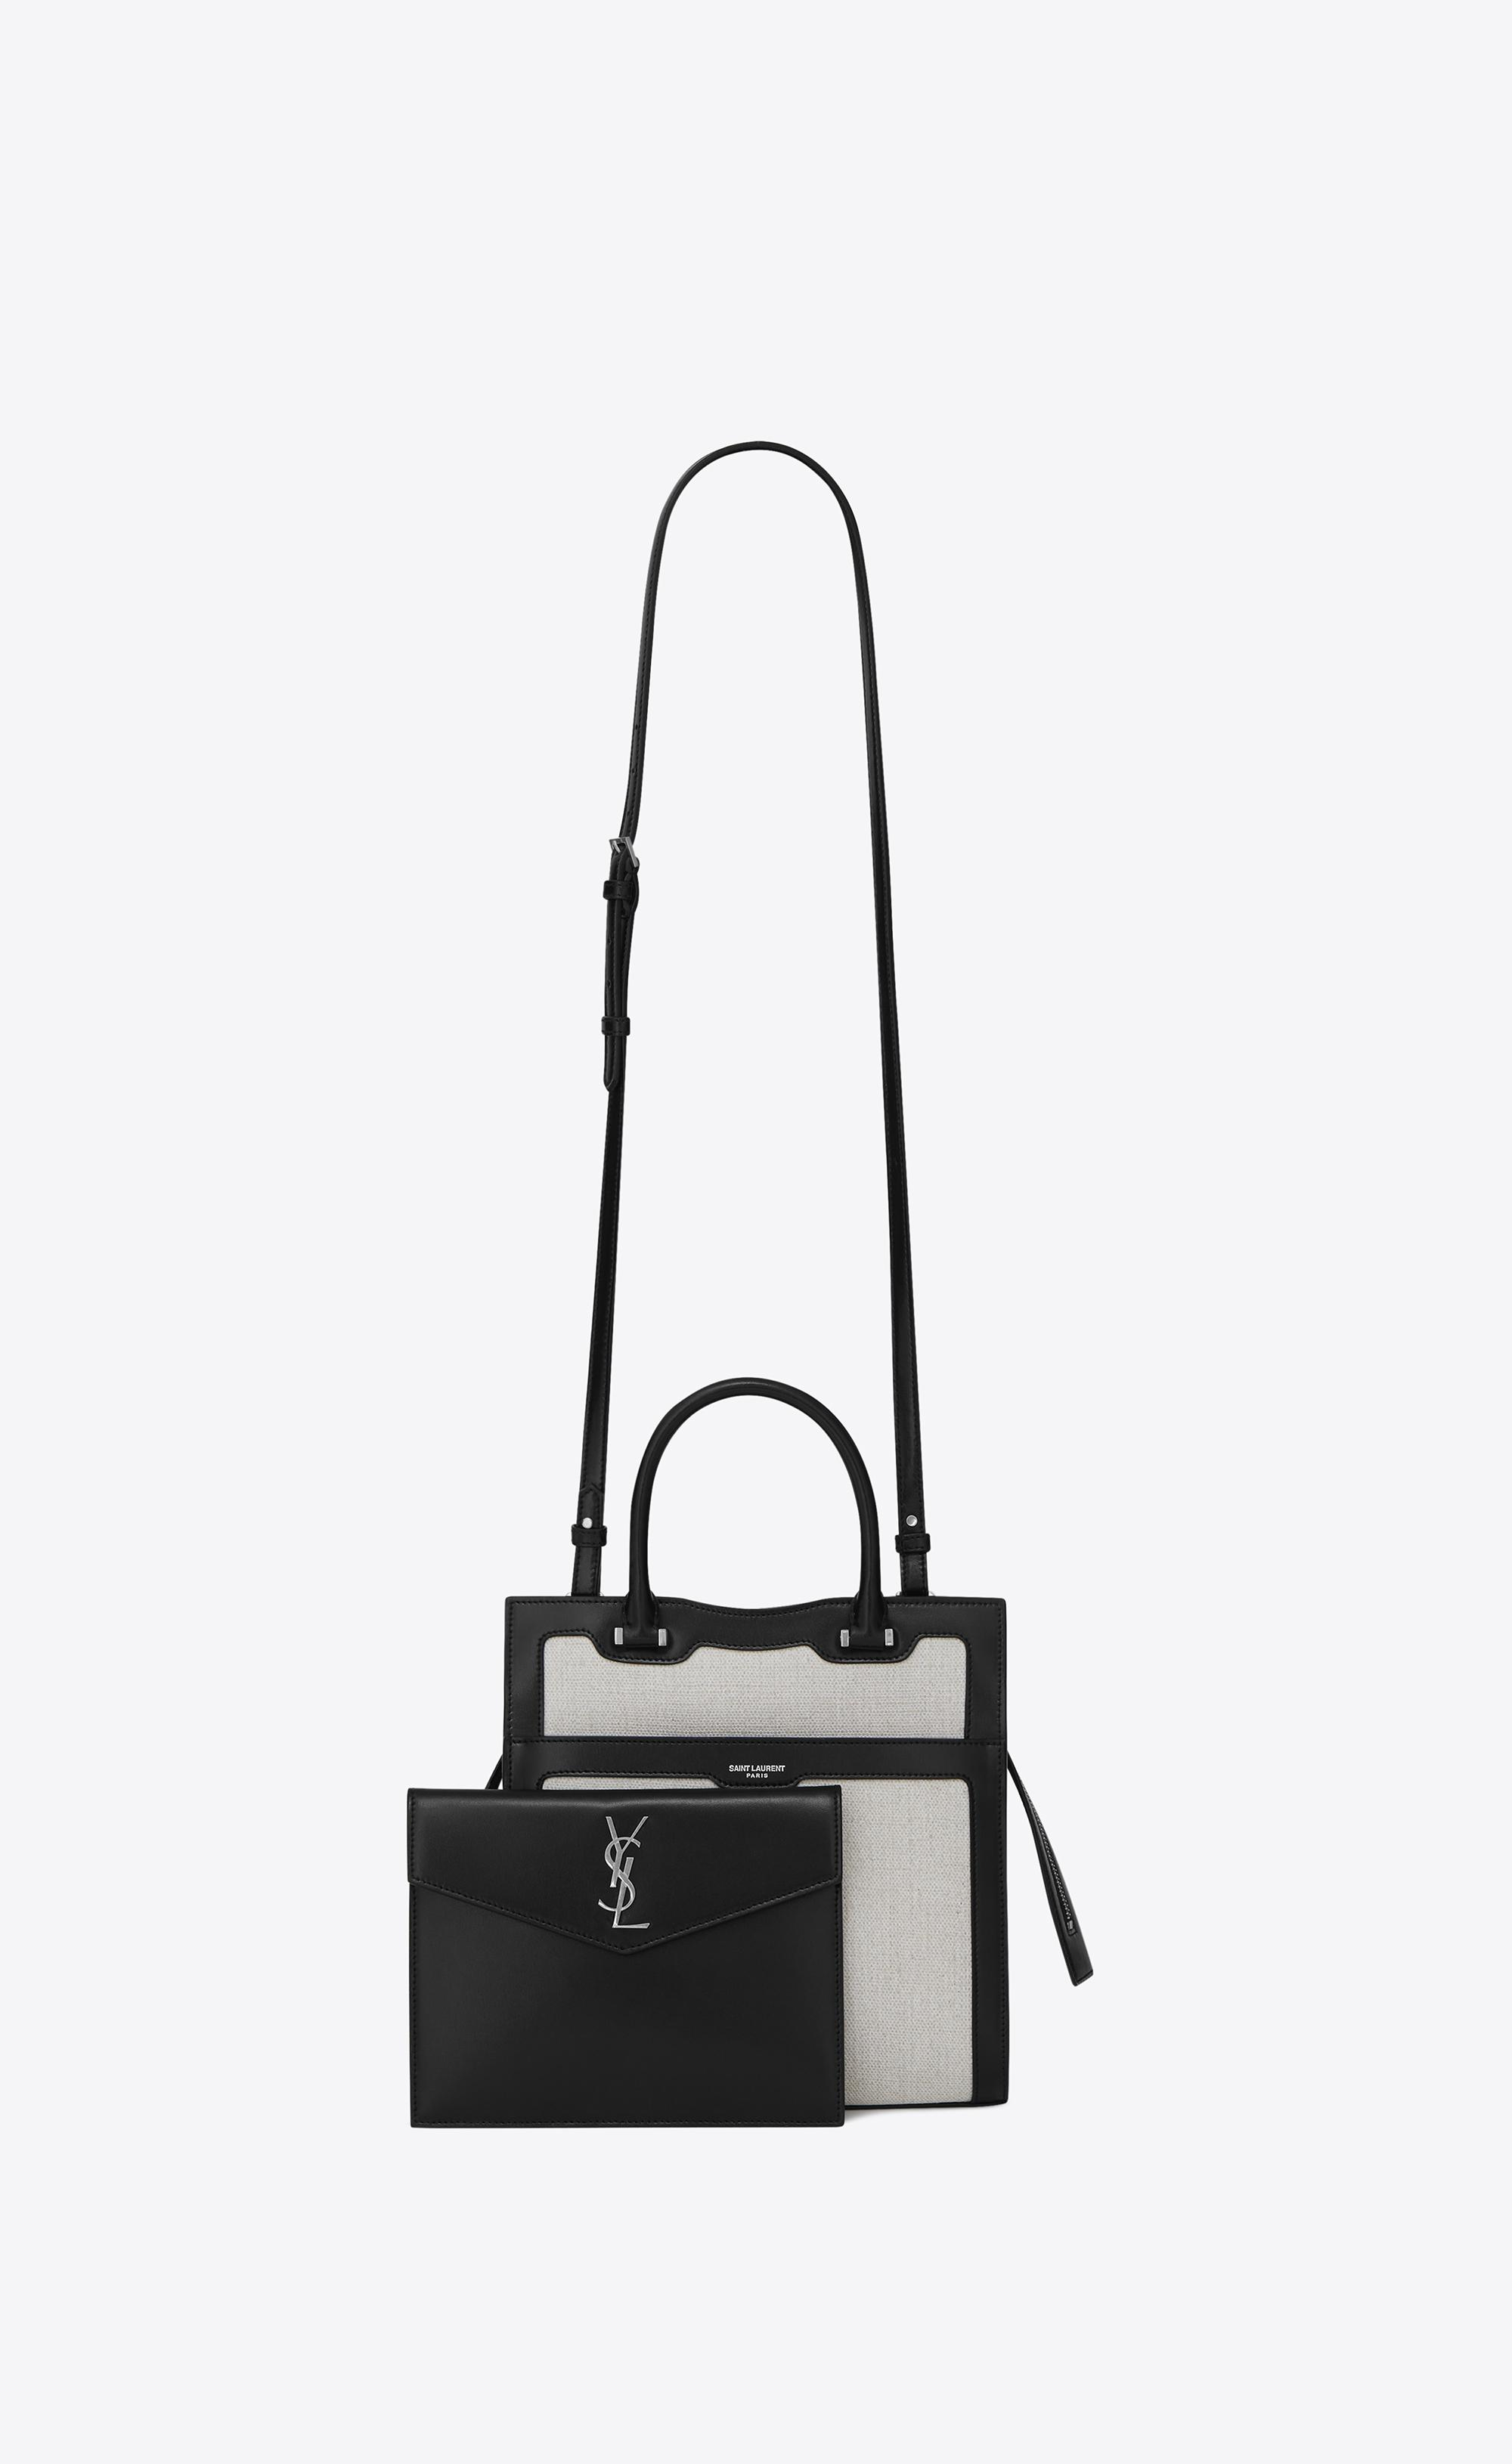 Lyst - Saint Laurent Small Uptown Tote in Natural bb27ac111c349